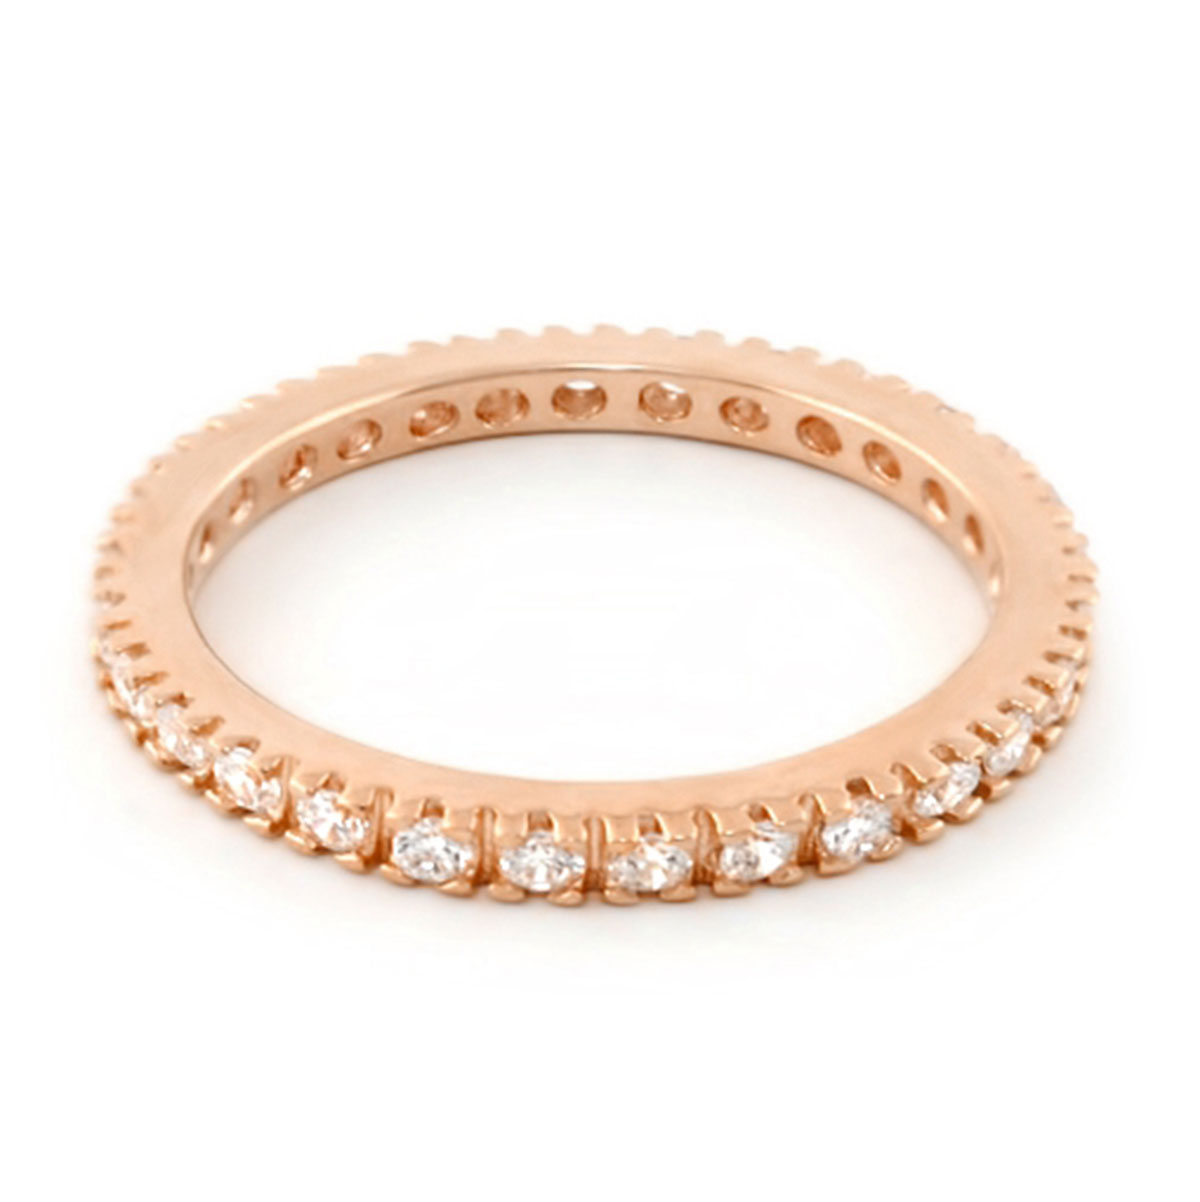 347591-Lauren G Adams ROSE GOLD Stackable 'Eternity' Band Ring ONLY 1 LEFT!